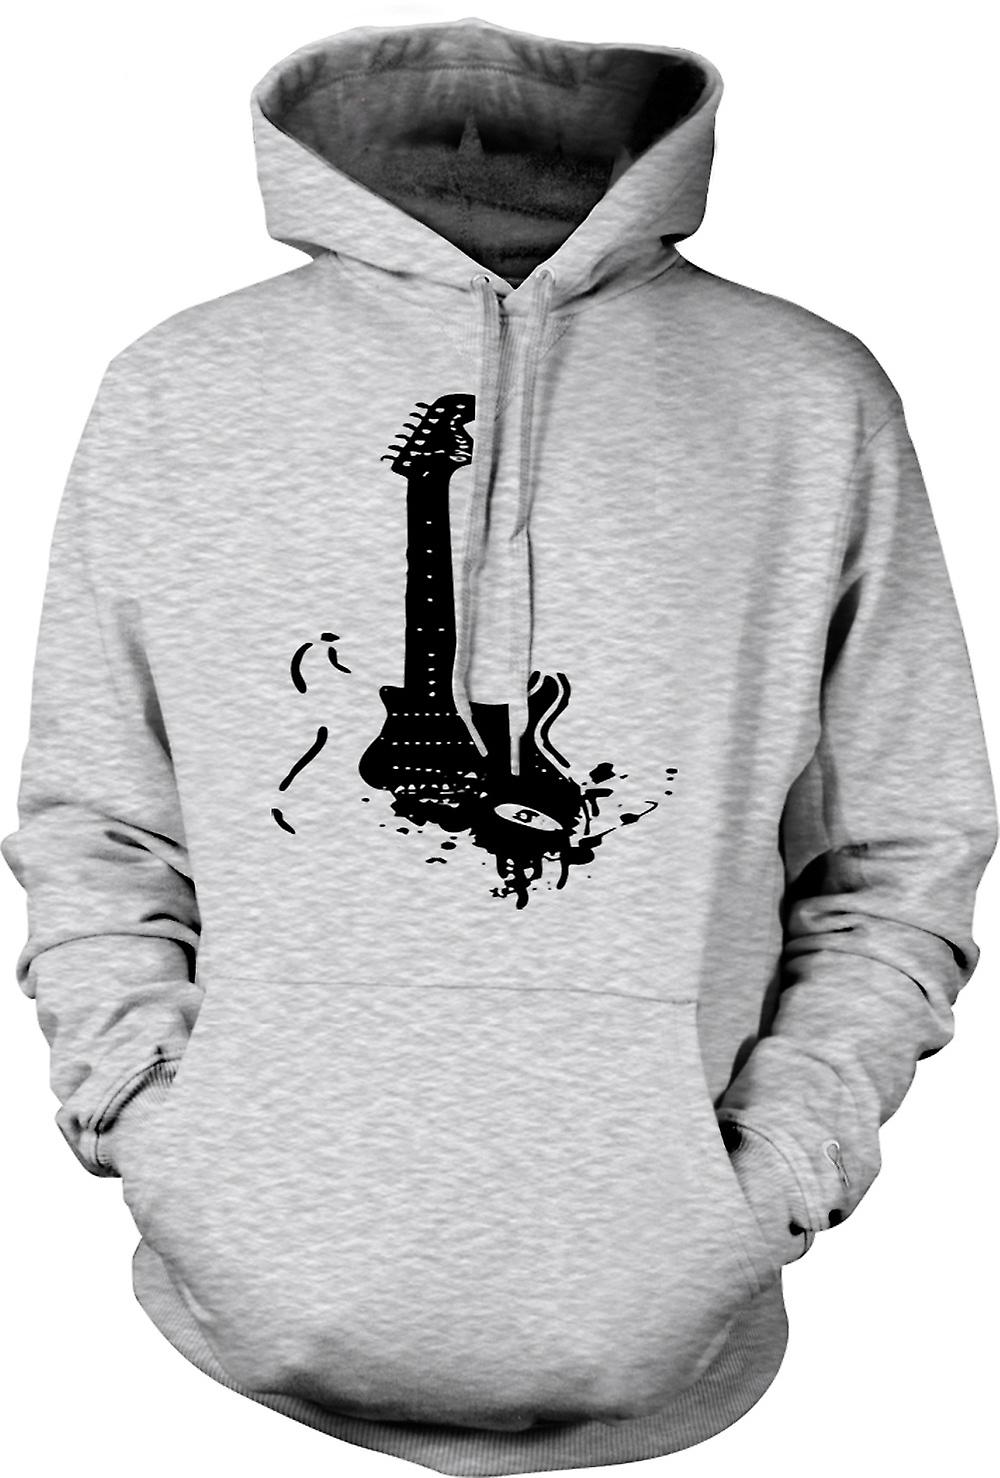 Mens Hoodie - Fender Strat - Pop Art - Guitar Music